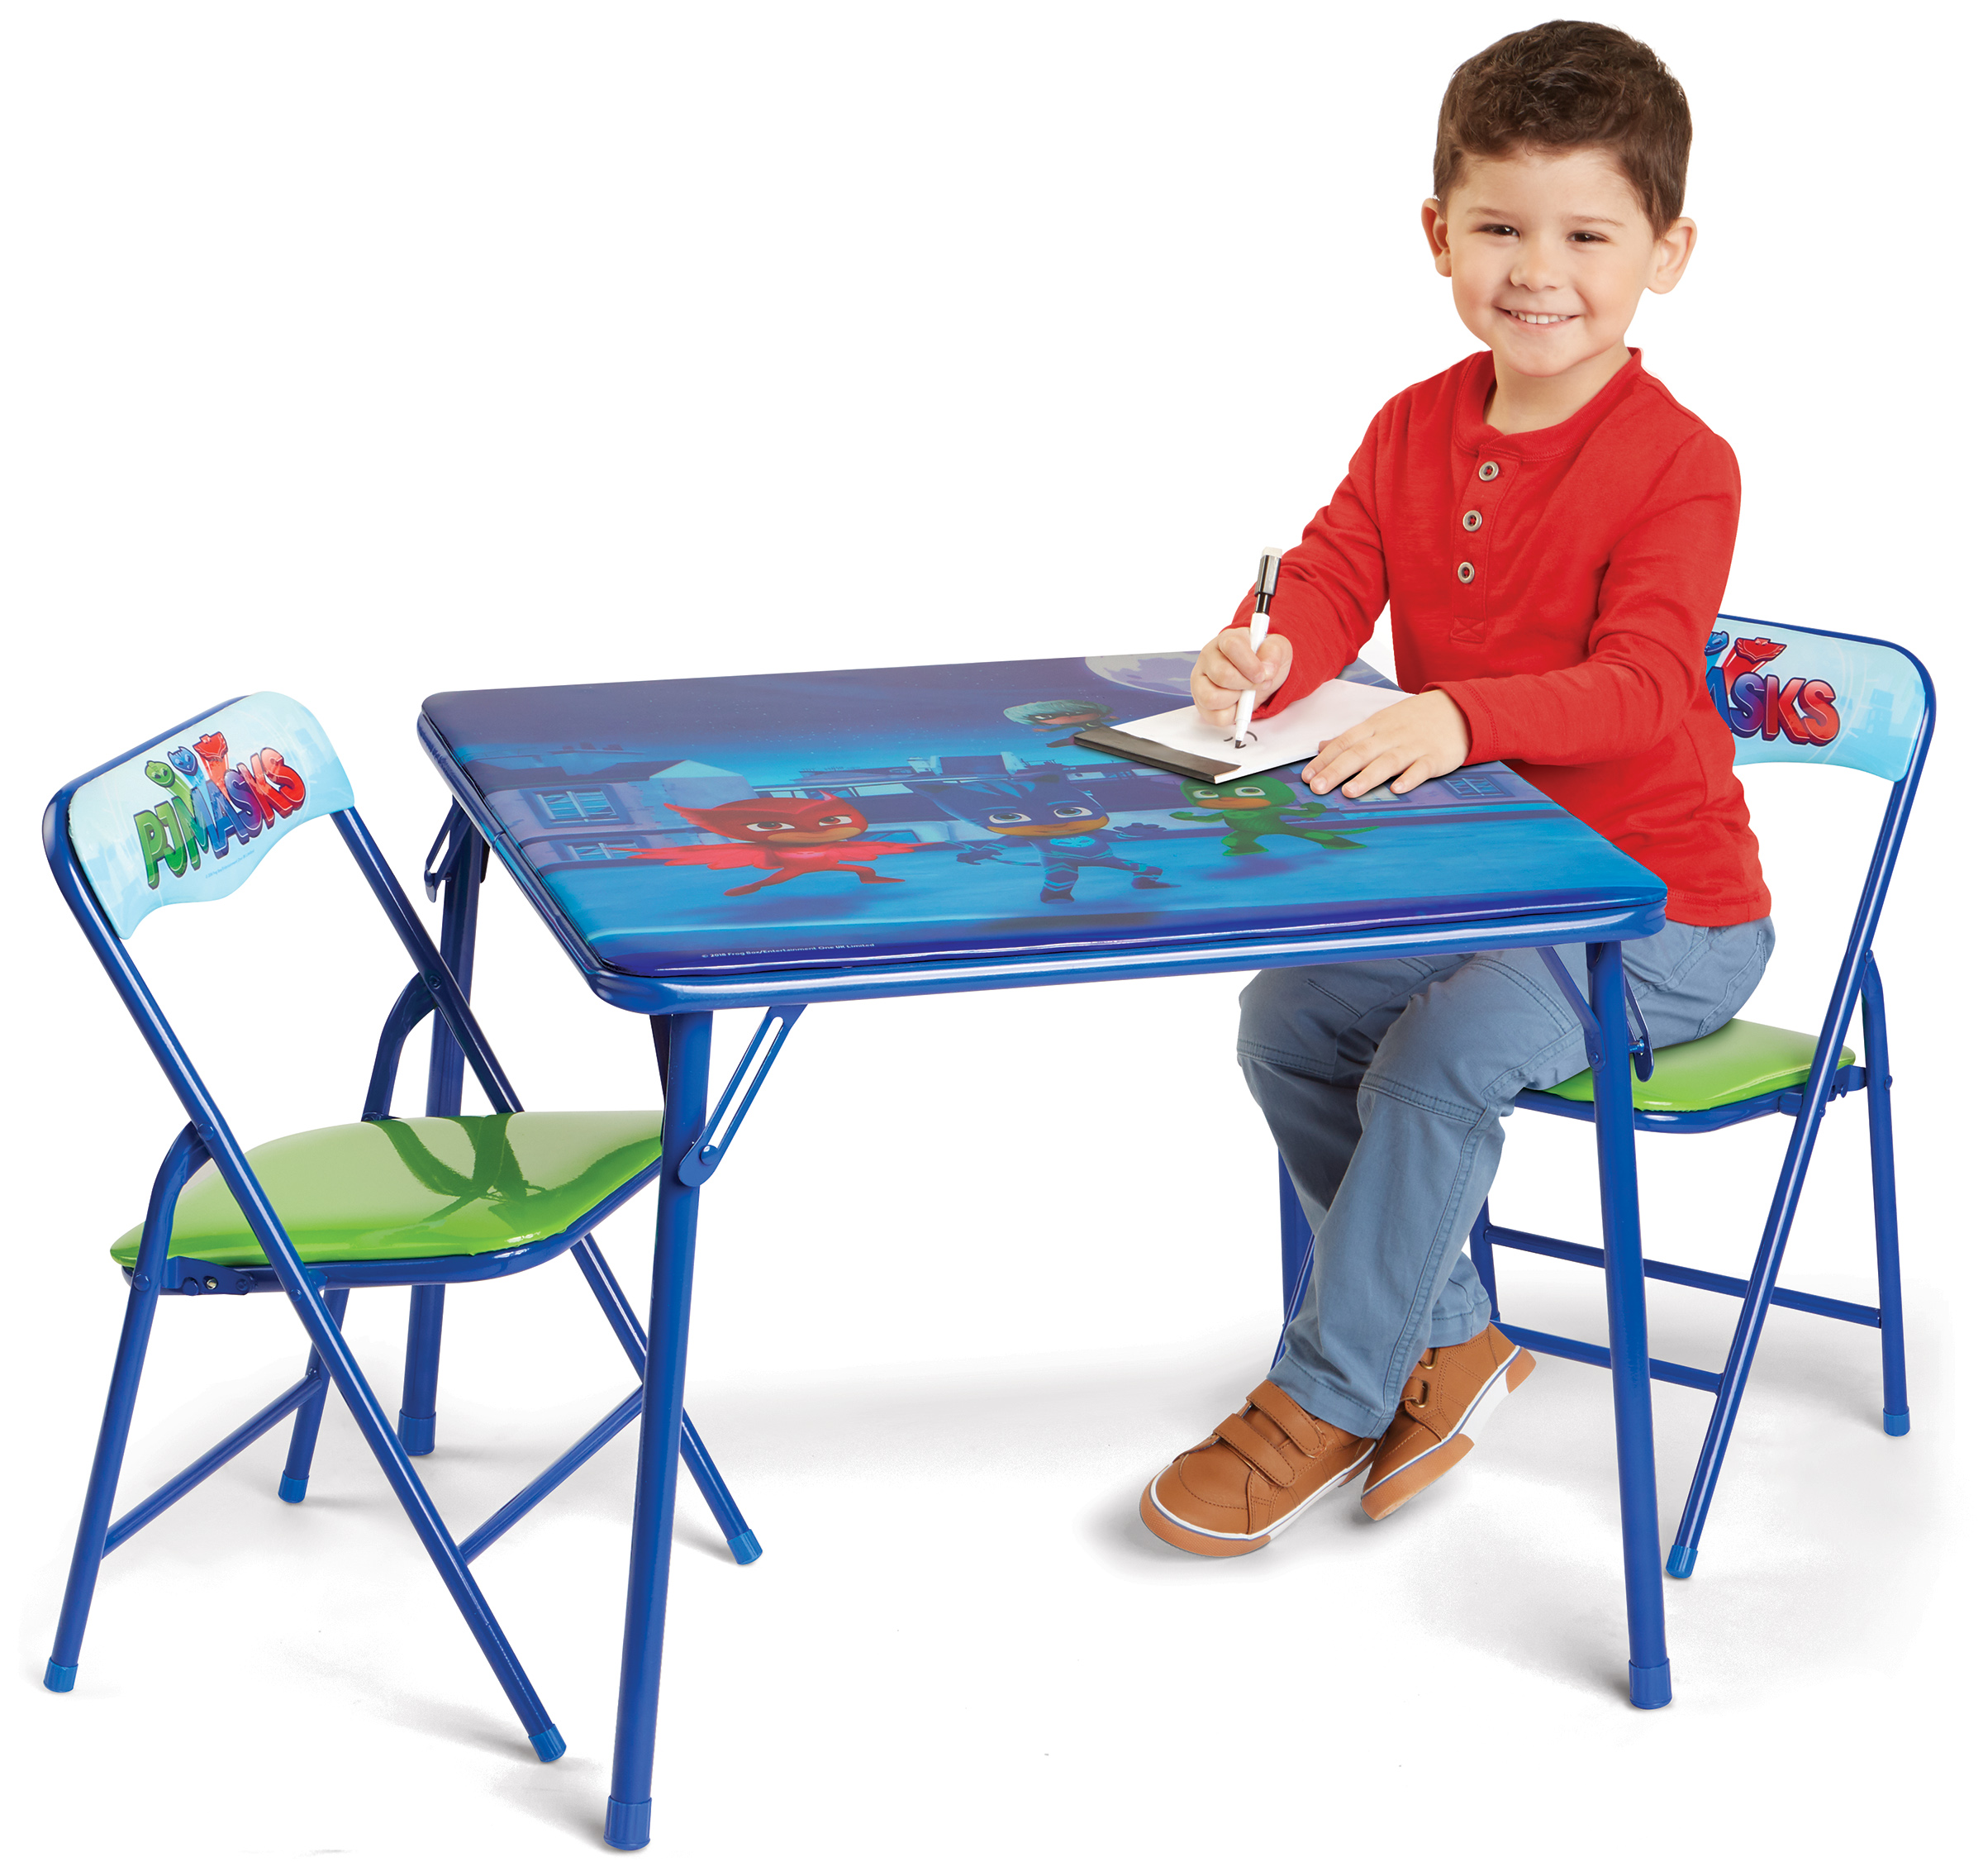 PJ Masks Erasable Activity Table